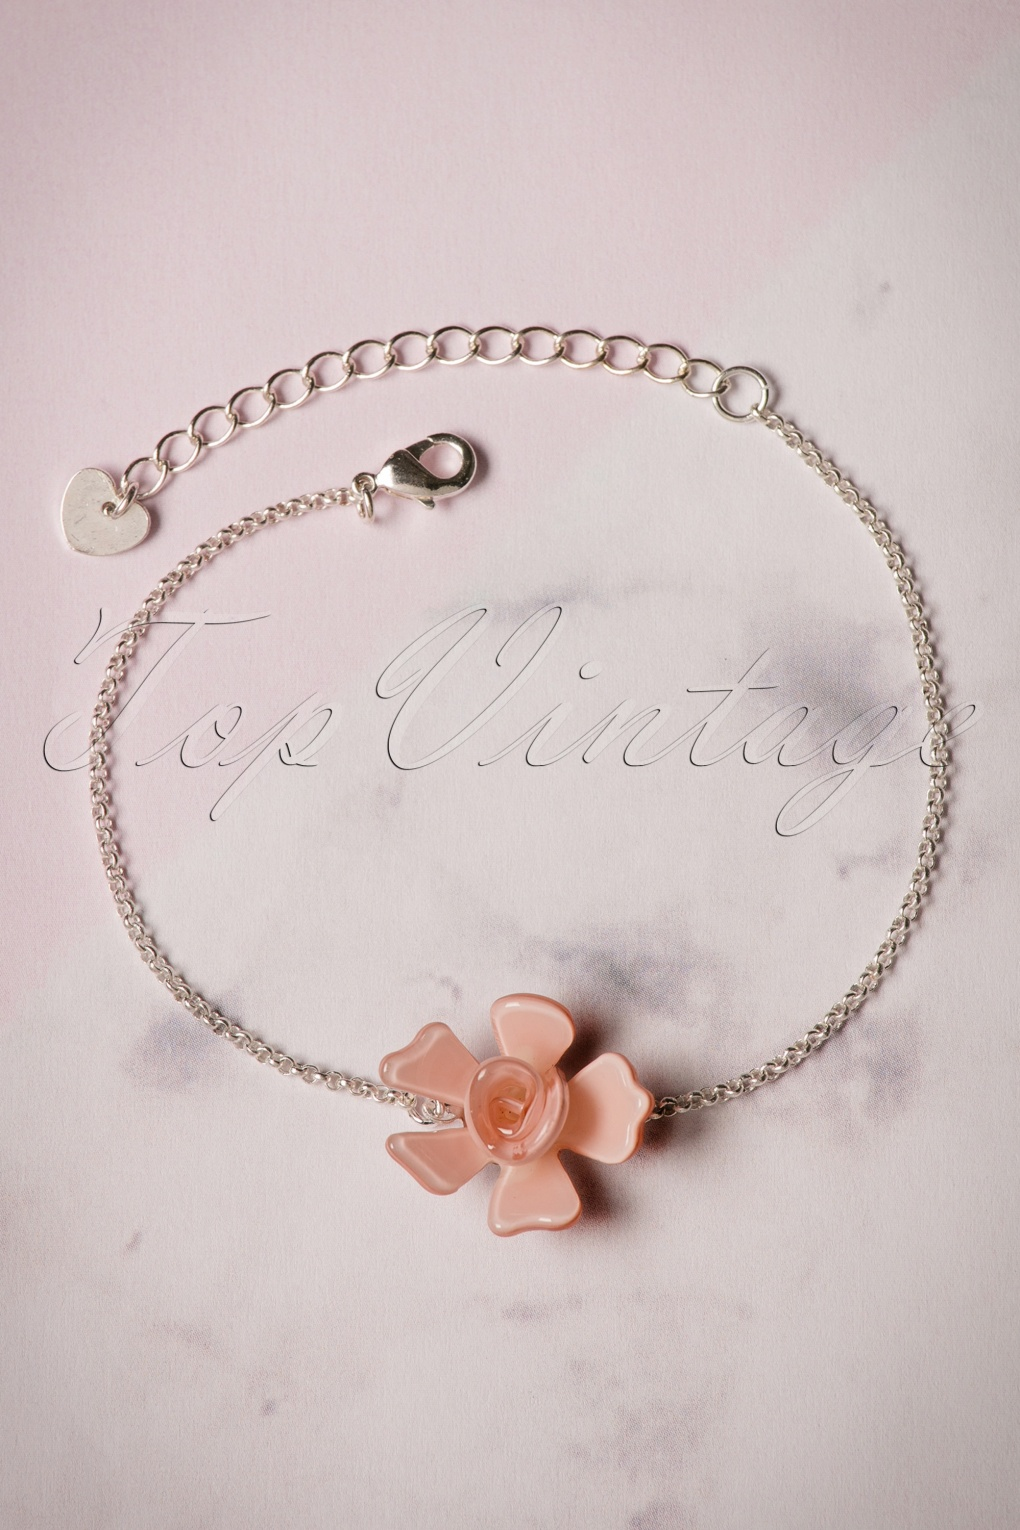 1960s Jewelry – 1960s Style Necklaces, Earrings, Rings, Bracelets 60s Single Rose Silver Plated Bracelet in Dusty Pink £14.96 AT vintagedancer.com